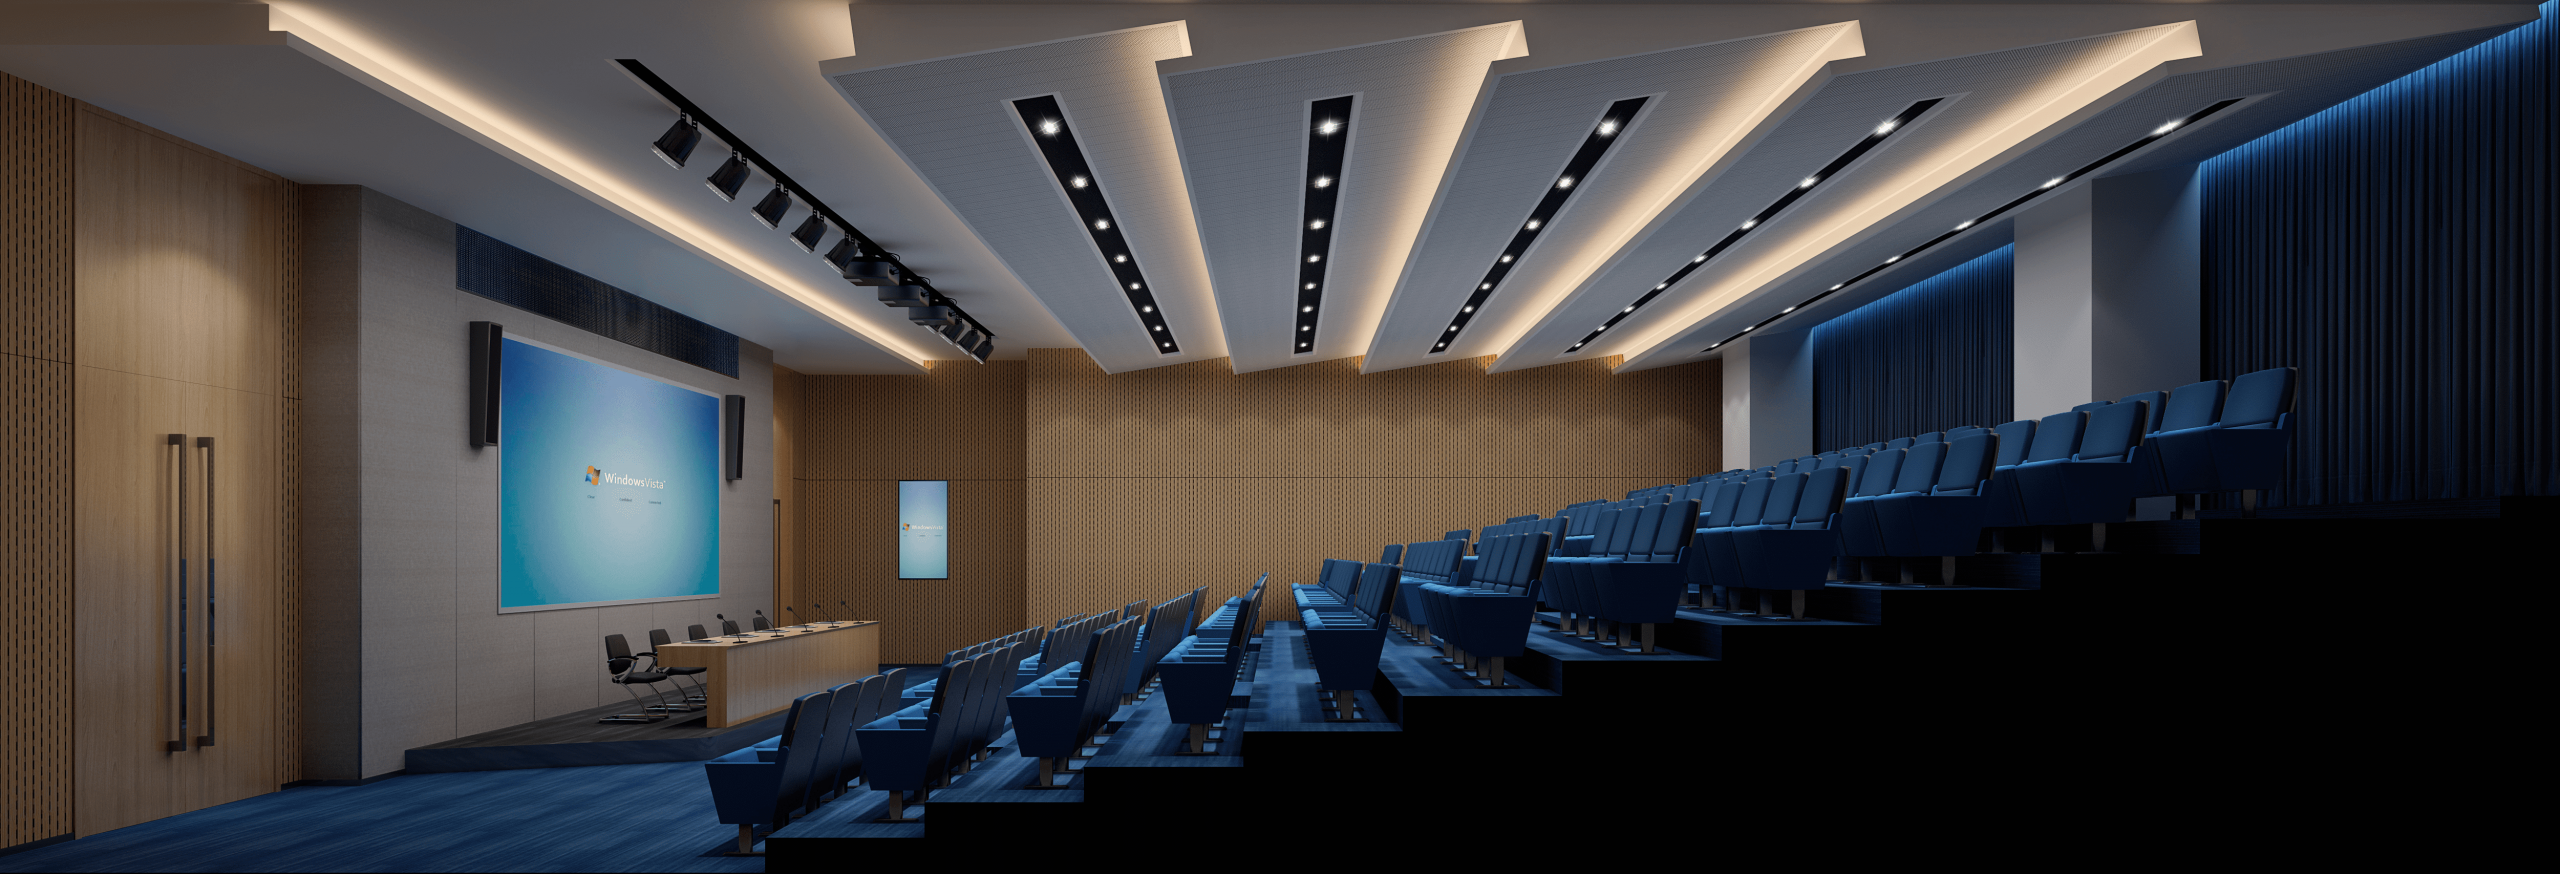 How to find the best perspective in the lecture hall renderings? Secret!